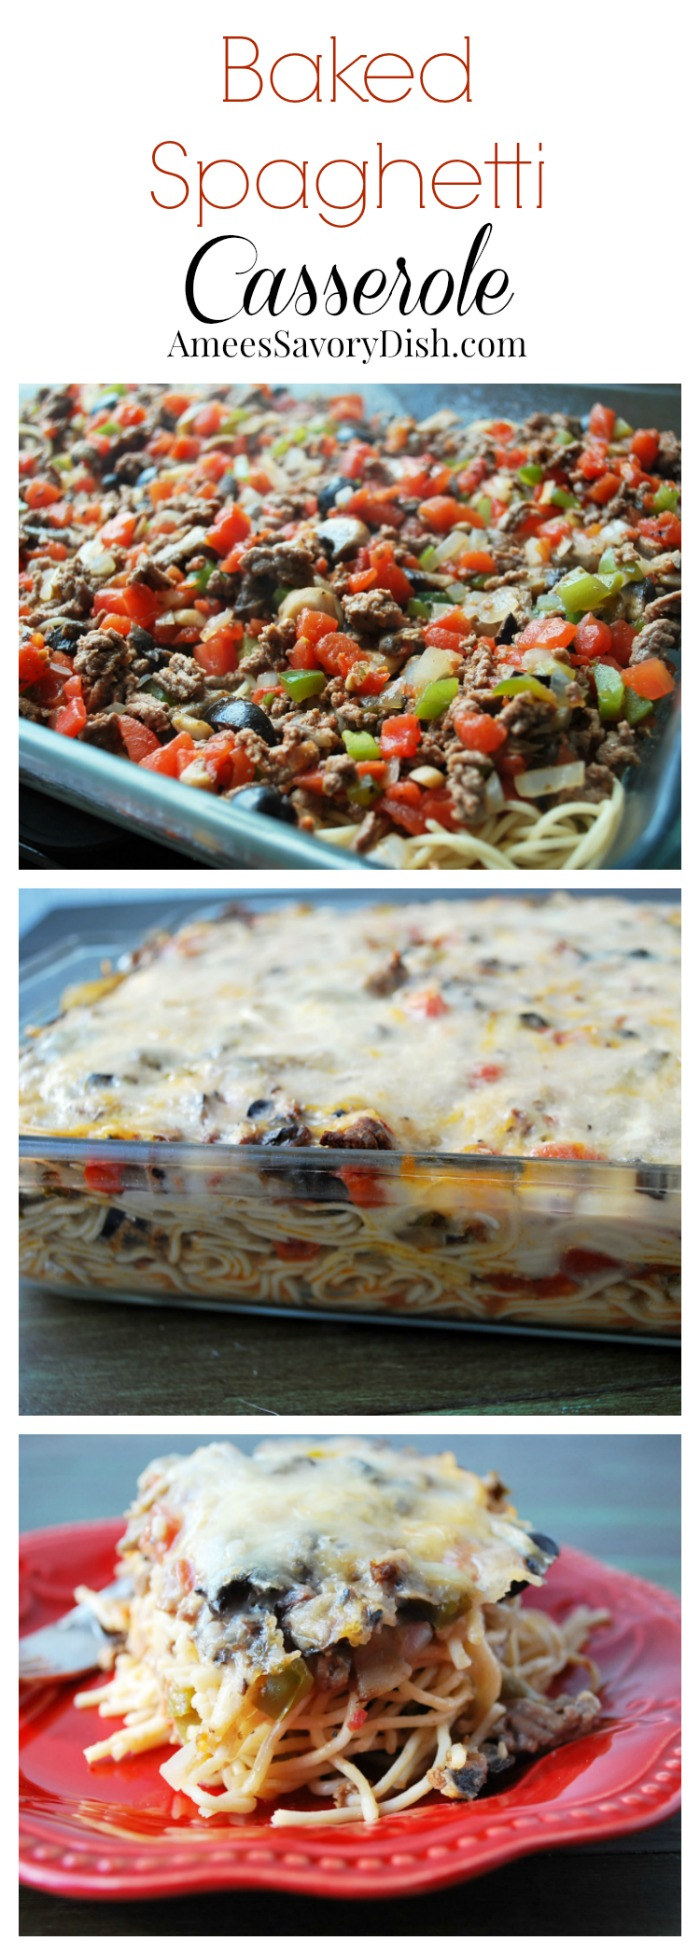 Baked Spaghetti Casserole Collage